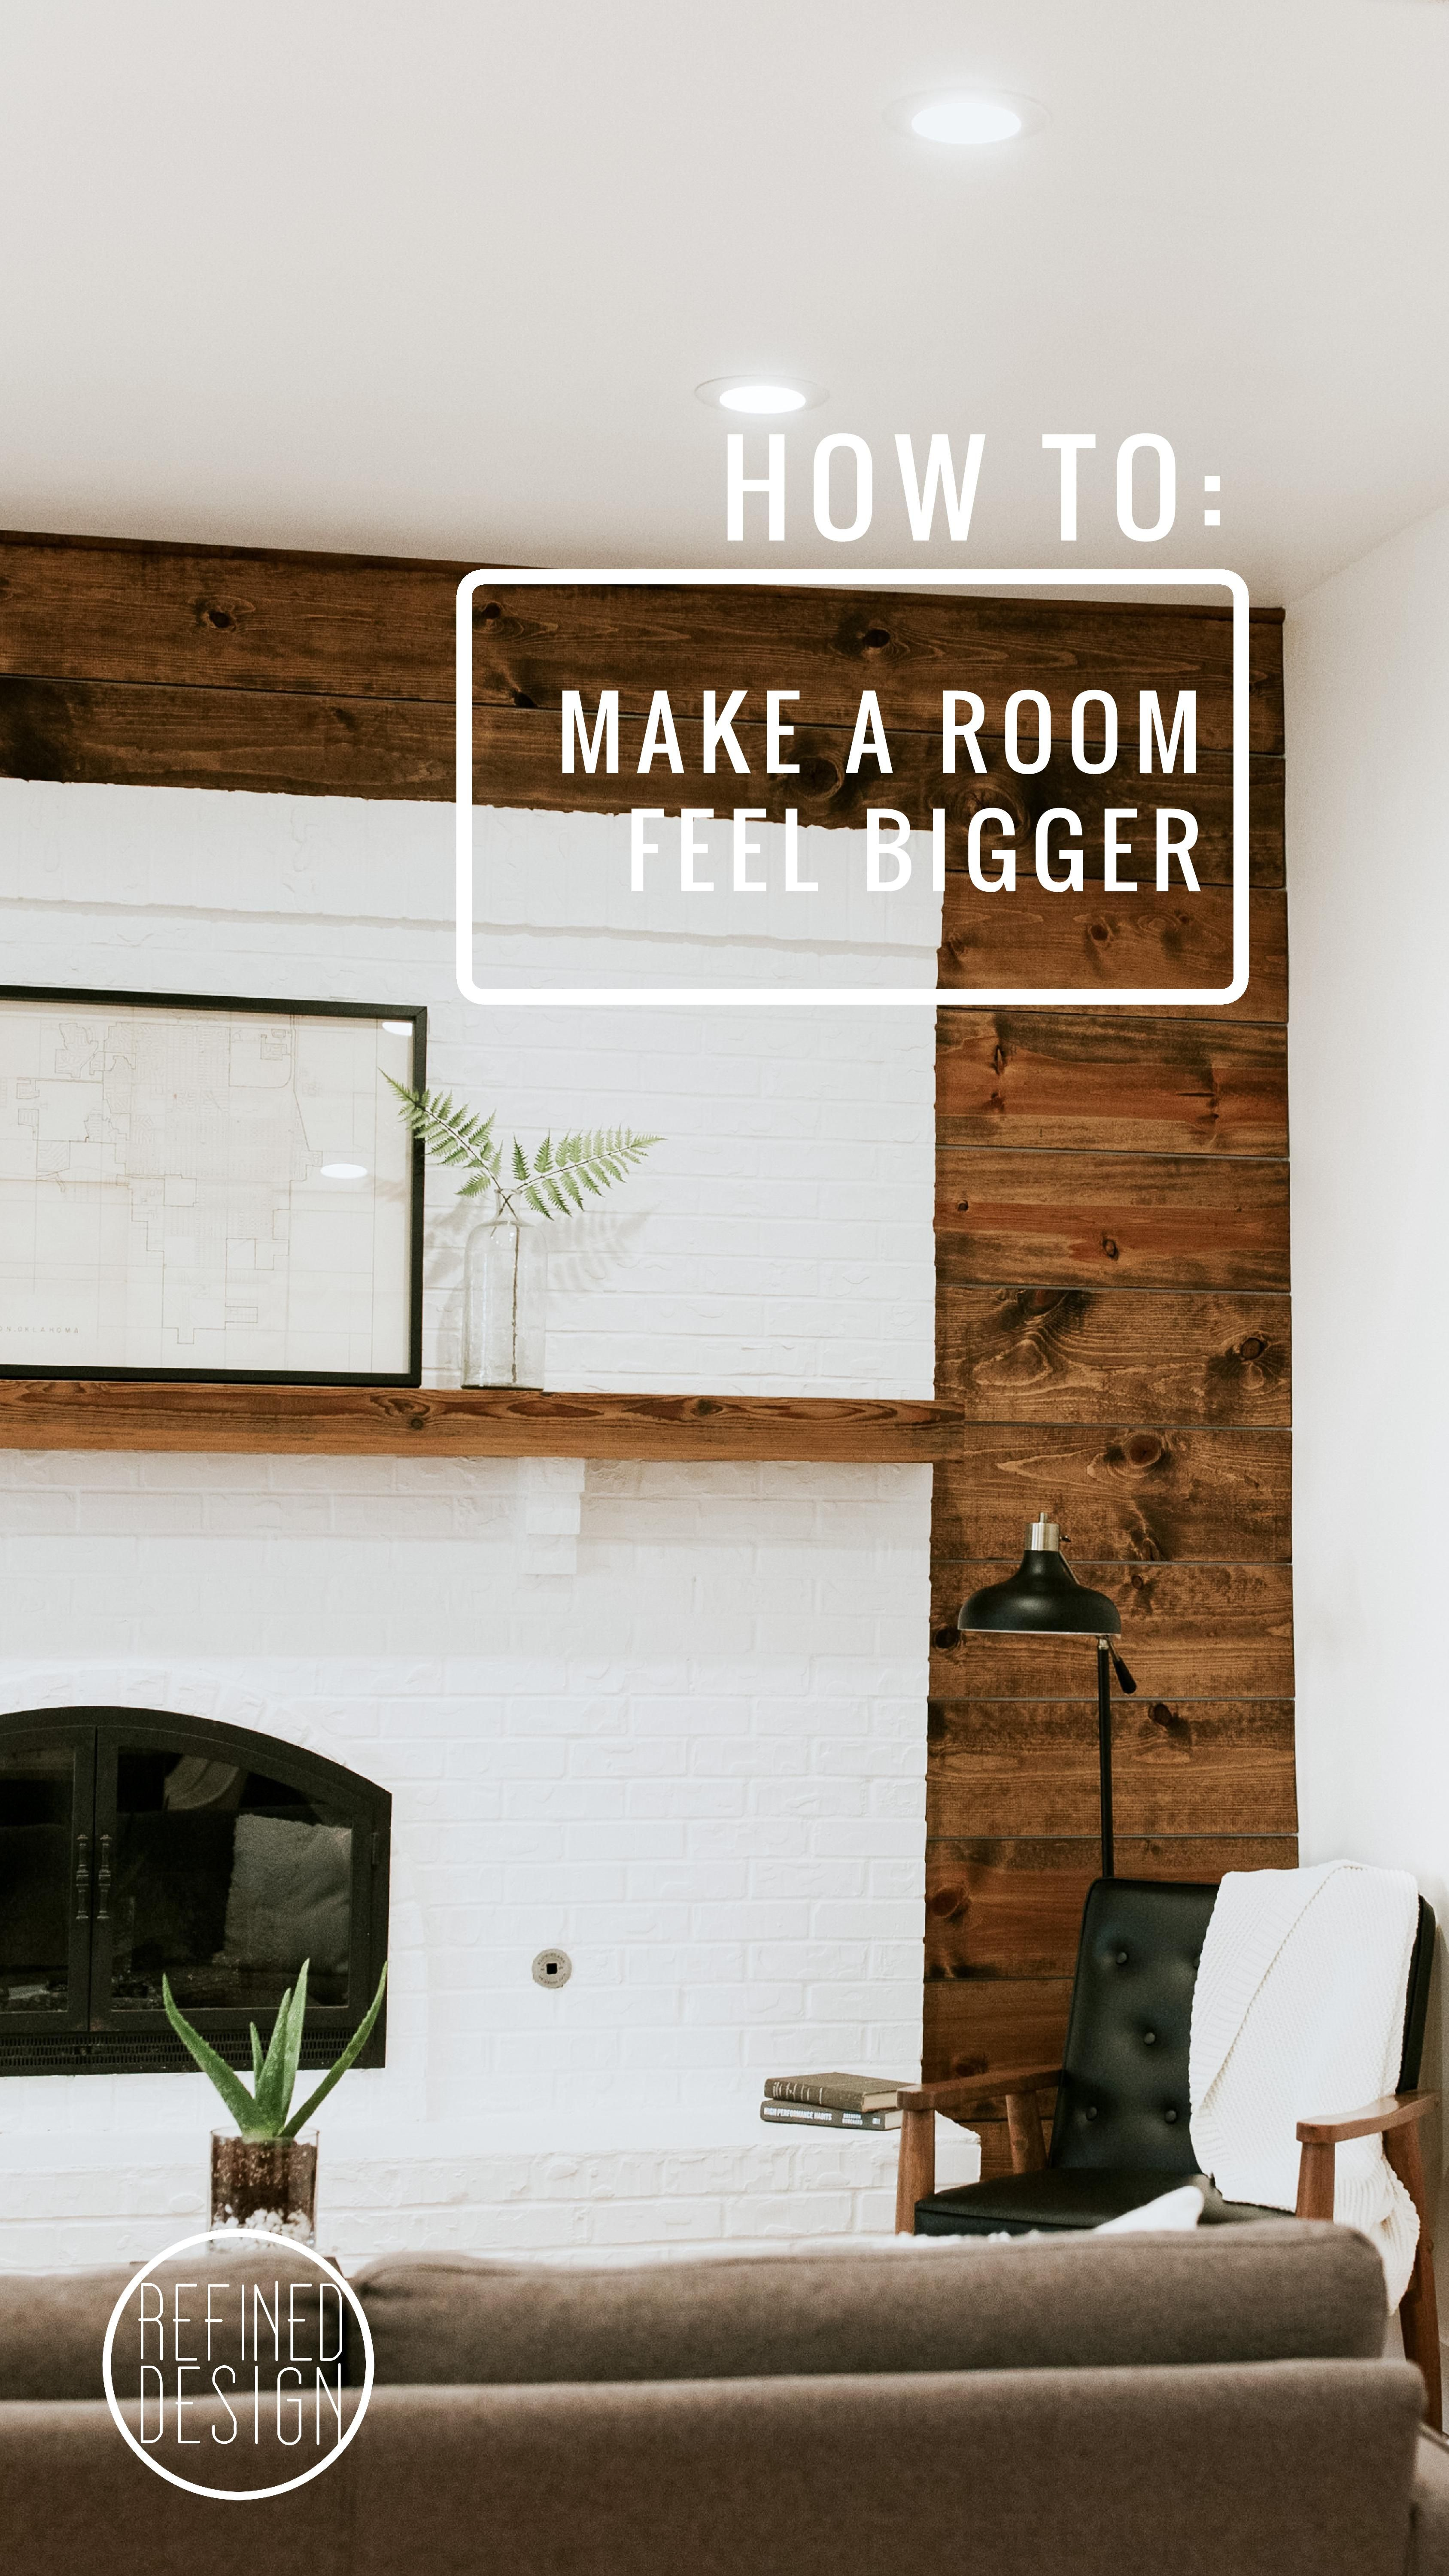 10 Hacks You Need To Know Nadine Stay Home Interior Design Blog Making Room